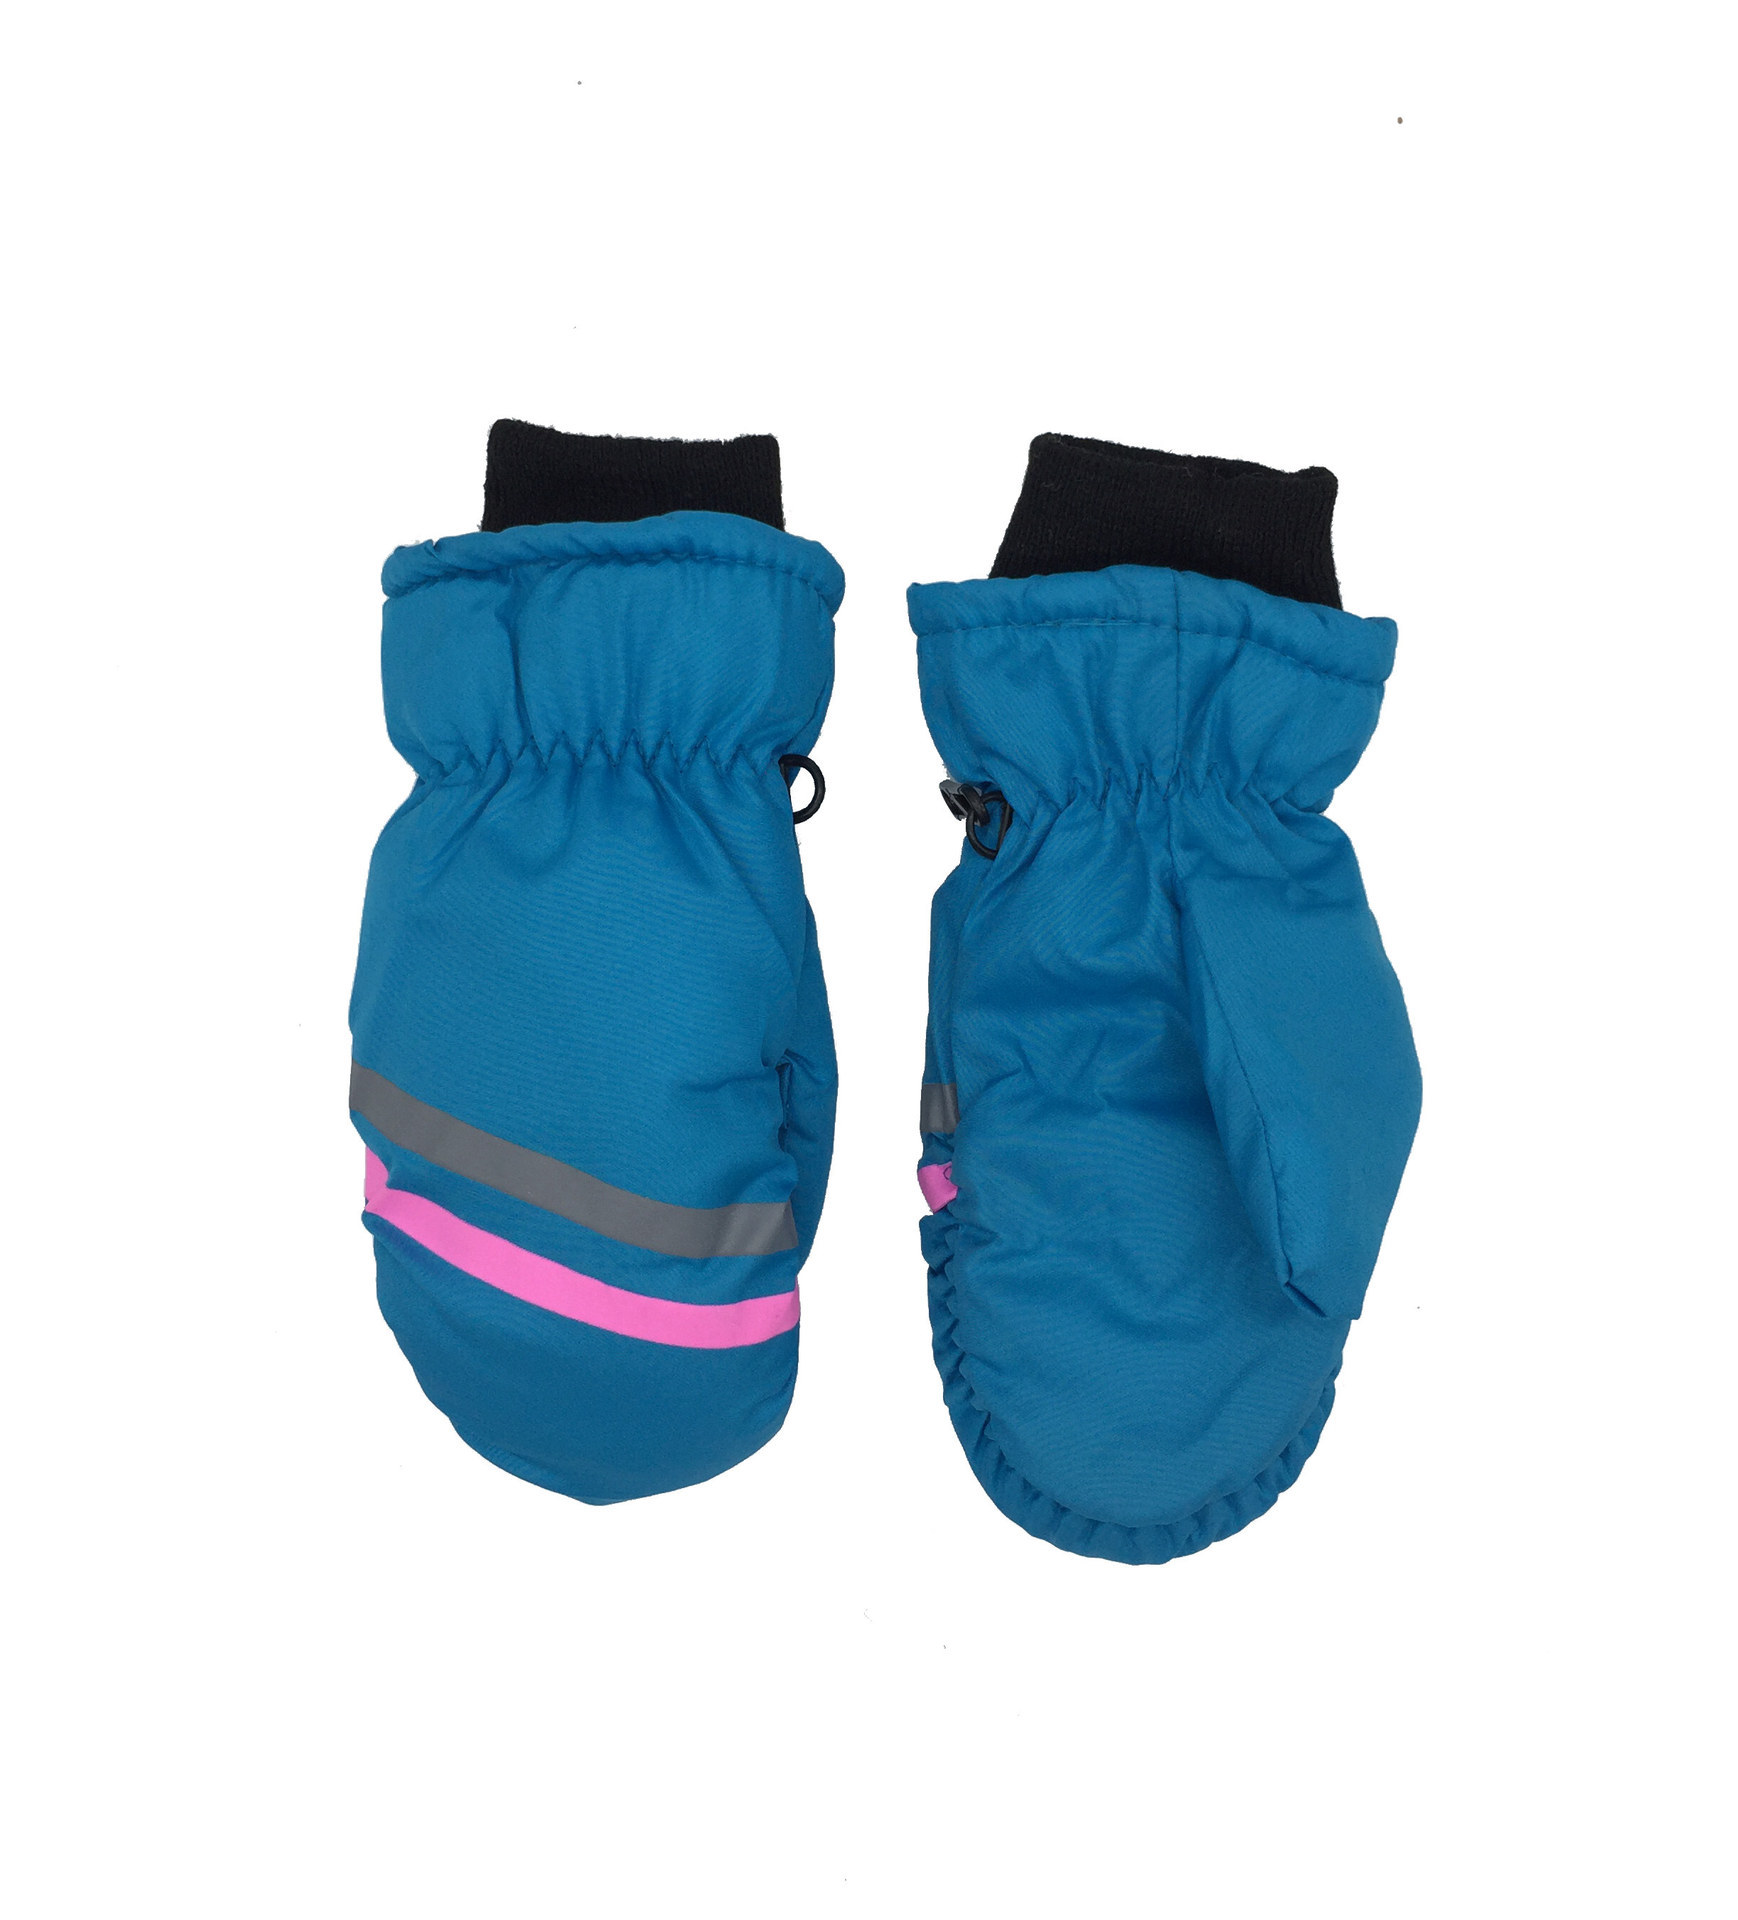 Pure Color Warm Gloves Perfect for Winter Activities like Ski